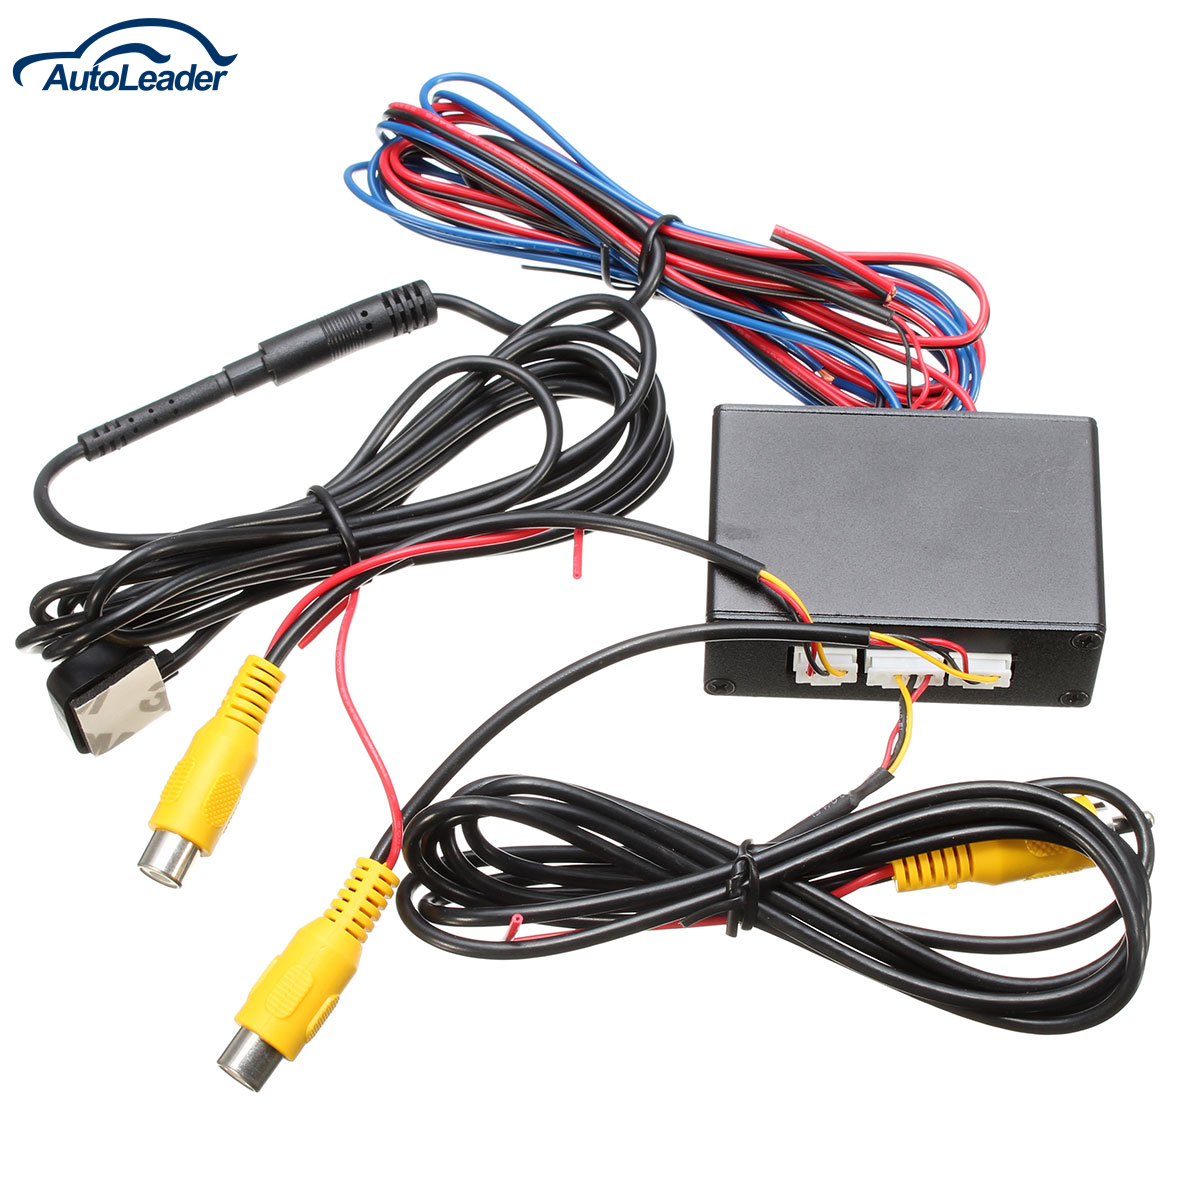 New Intelligent control car camera video switch(car video automatic switch) connect front or side/ rear <font><b>cameras</b></font>